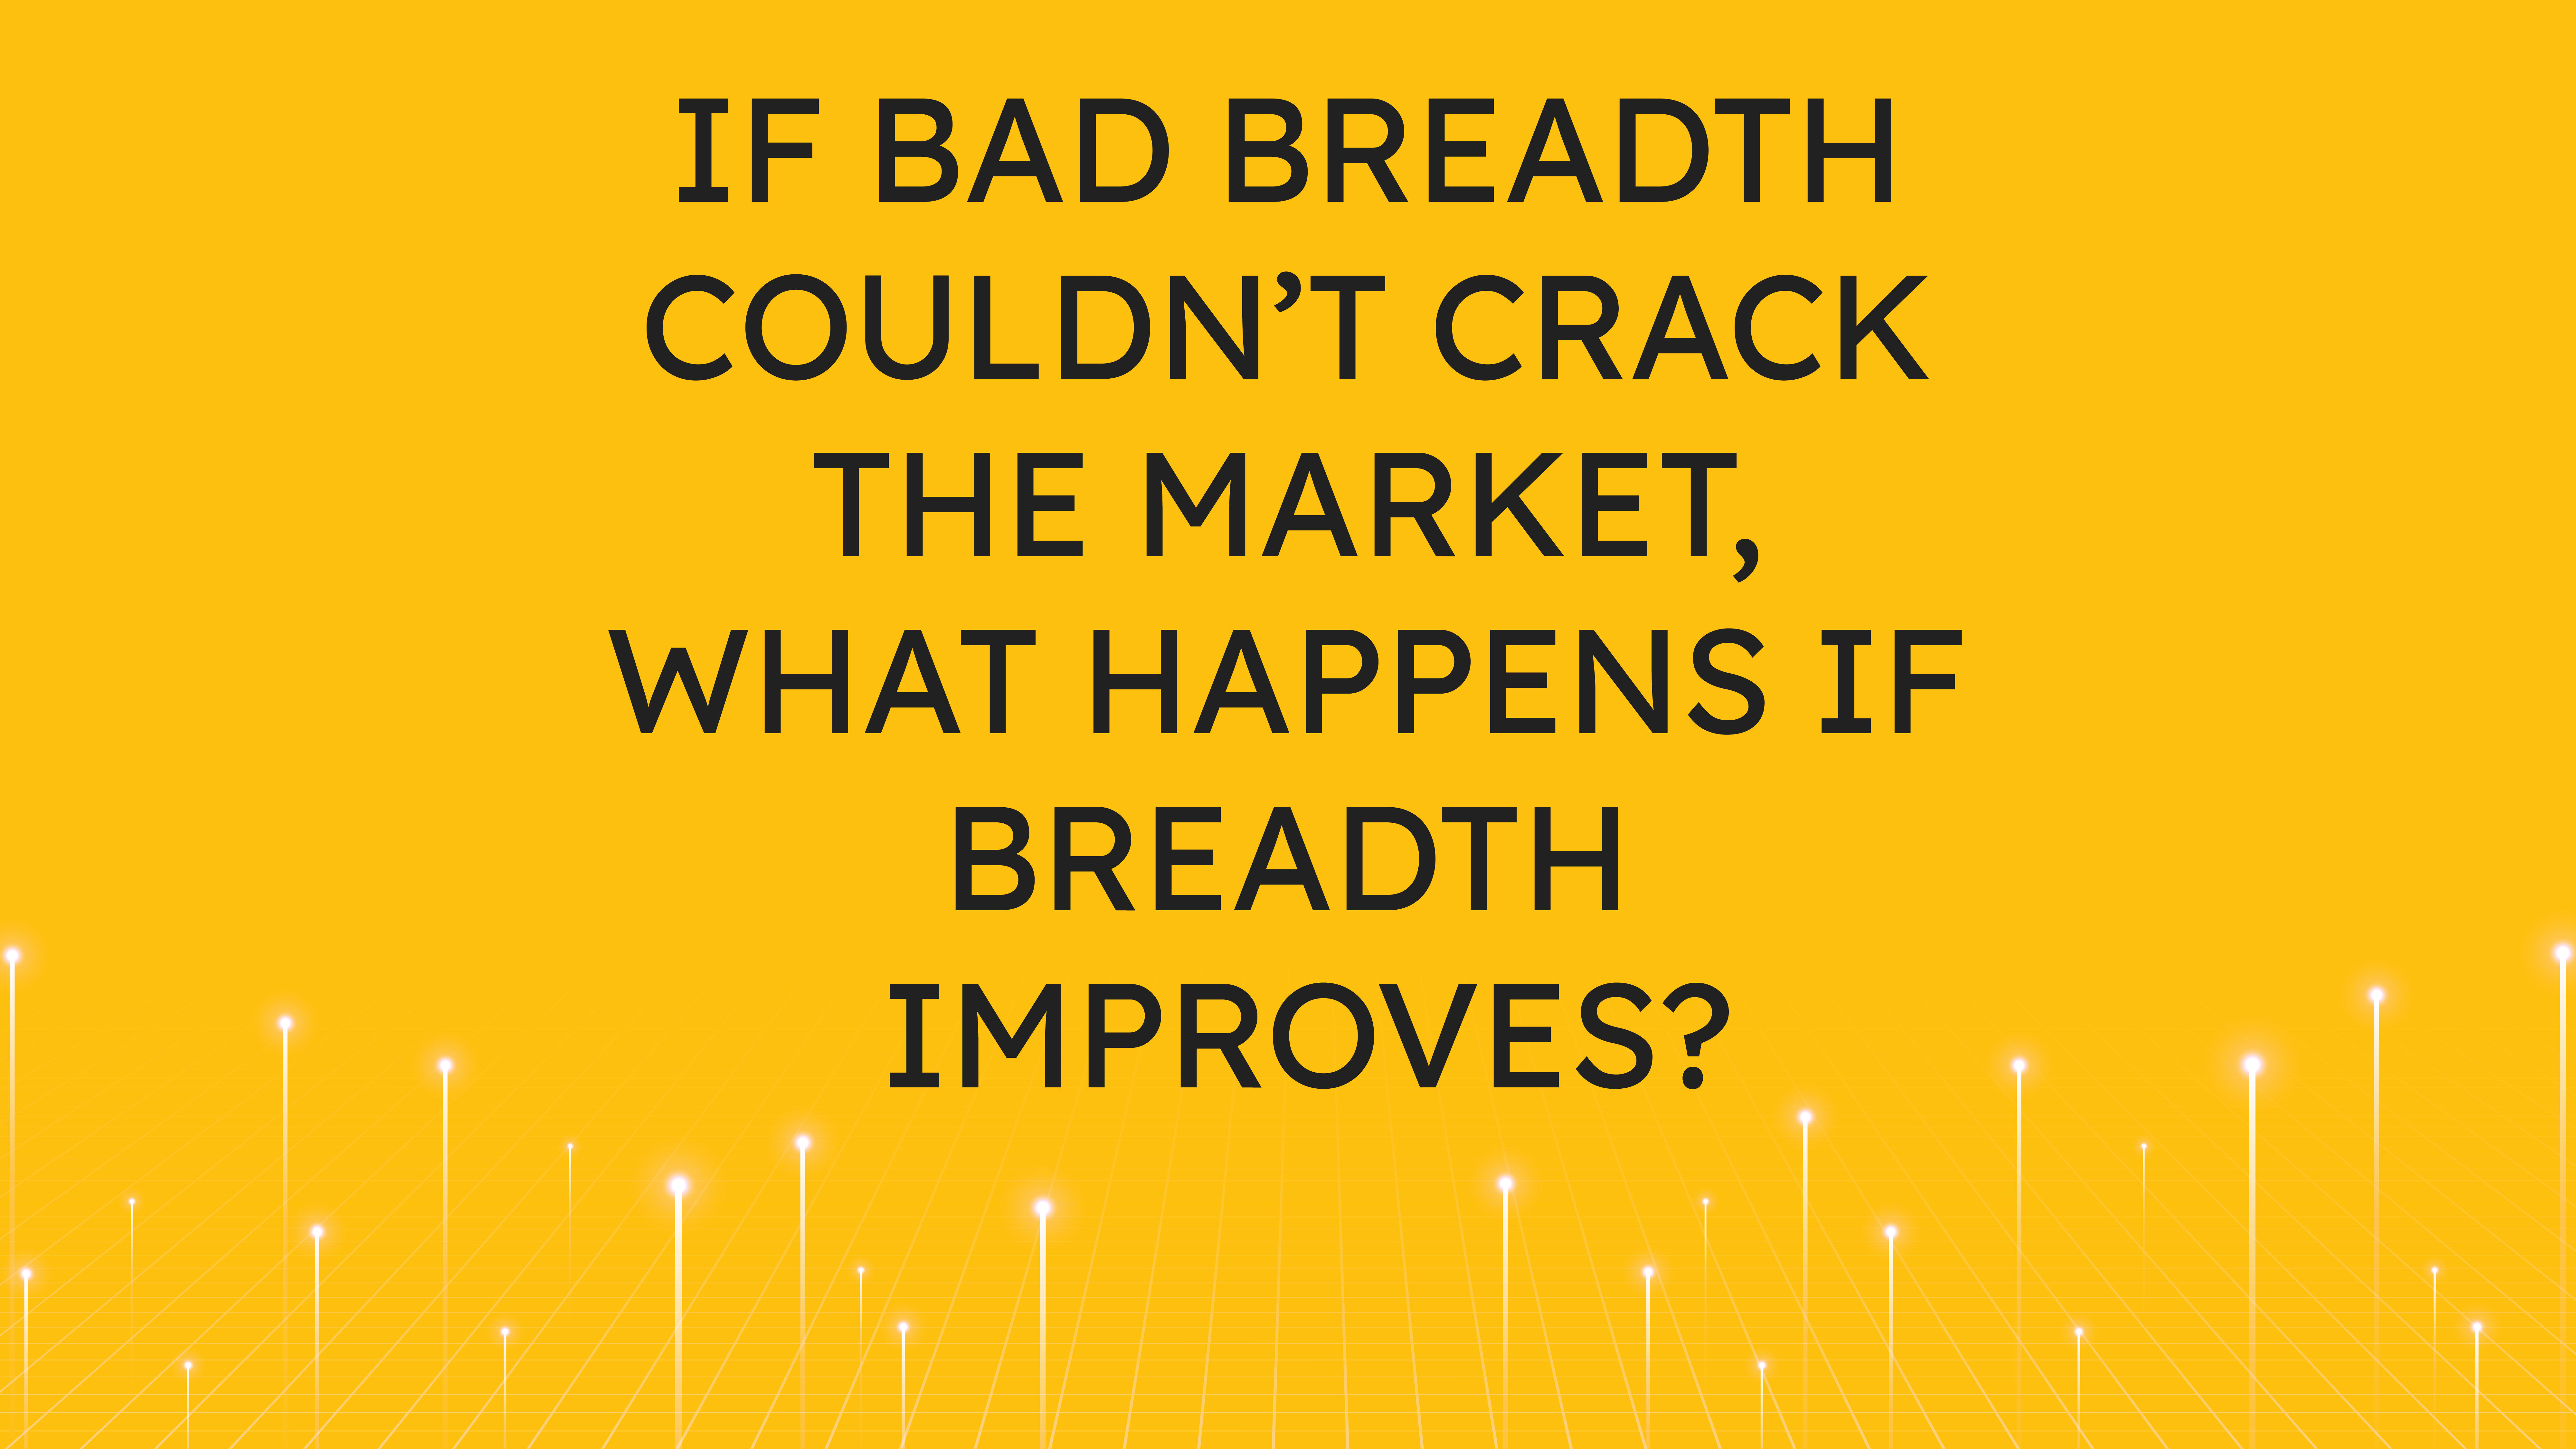 If Bad Breadth Couldn't Crack the Market,  What Happens if Breadth Improves?